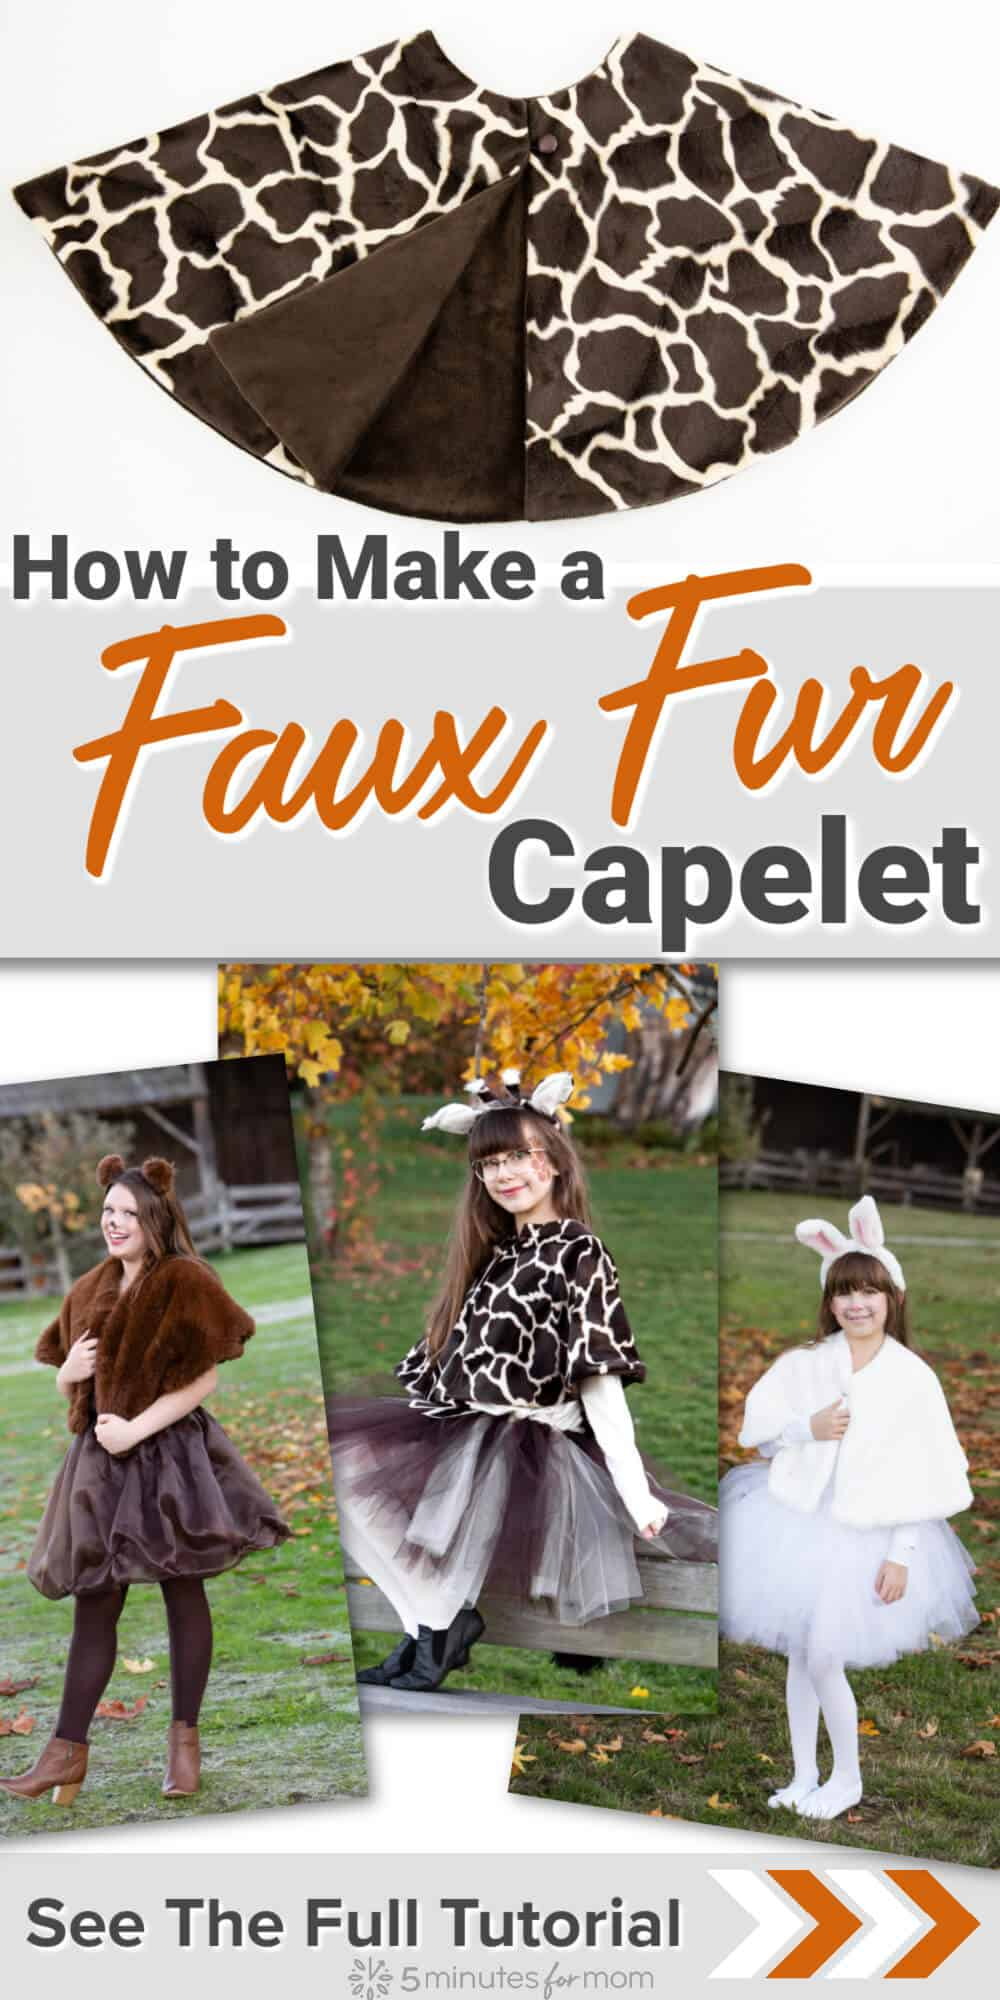 How to Make a Faux Fur Capelet